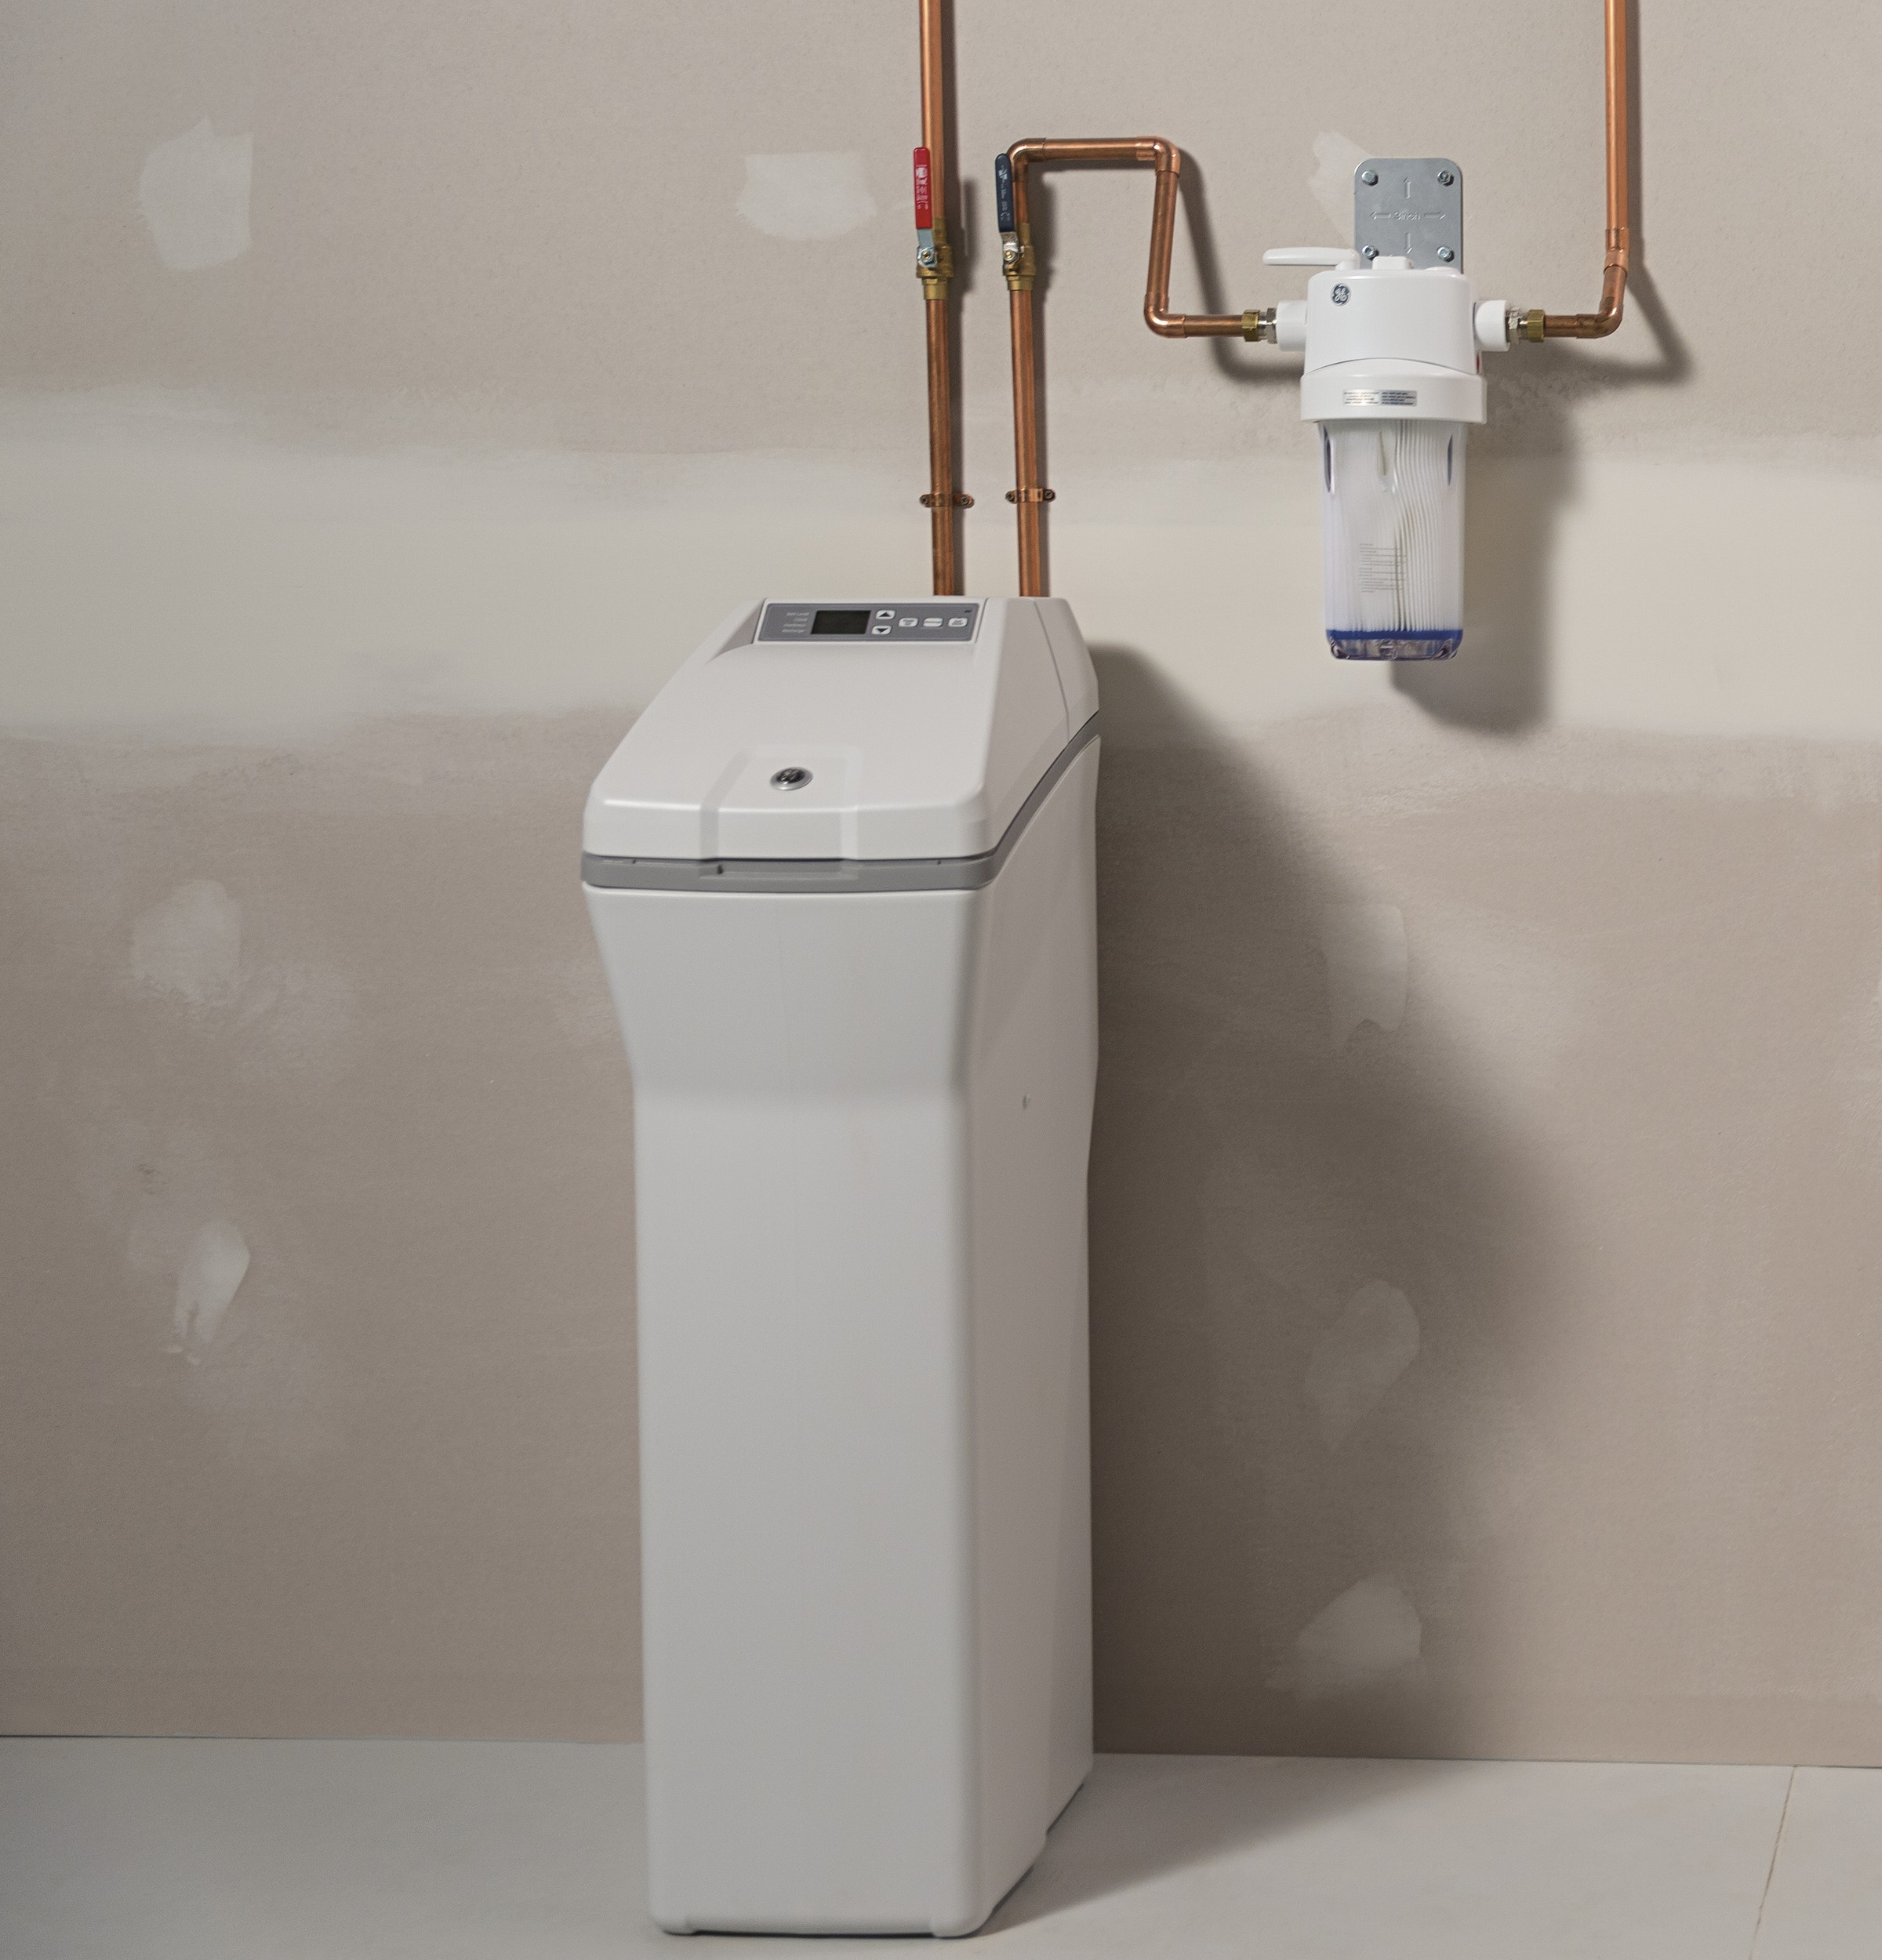 GE GXSH40V Water Softener - With a sediment filter